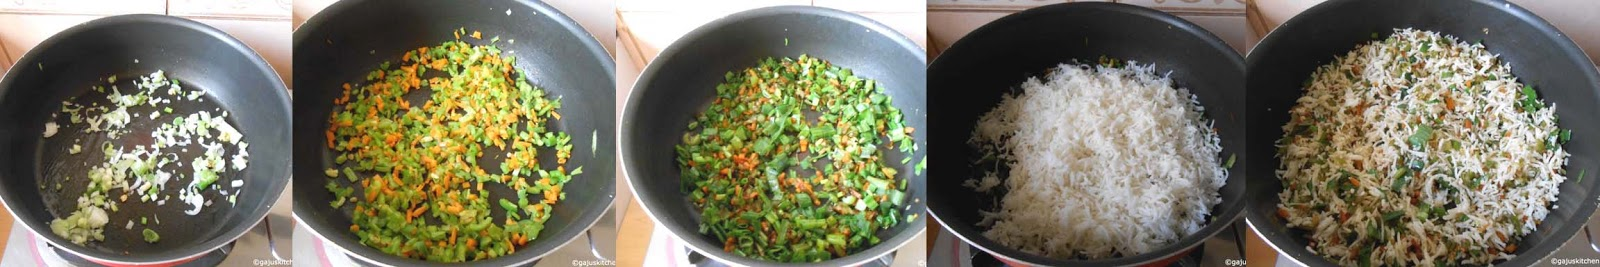 veg fried rice preparation